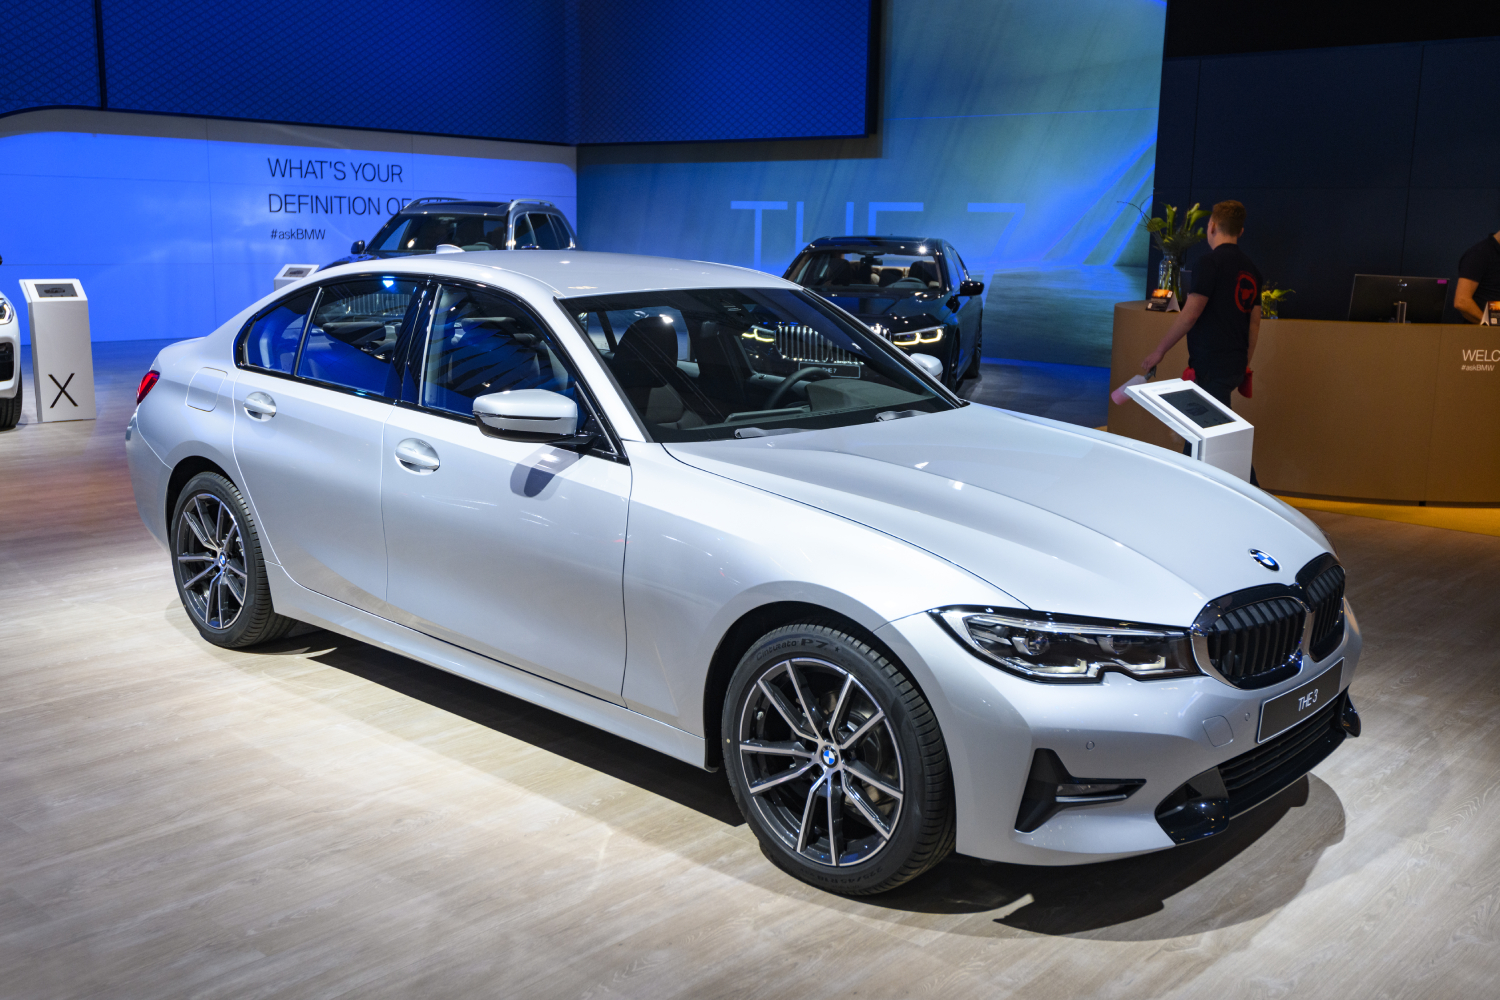 Why The Bmw 3 Series Is The Best Entry Level Sports Car